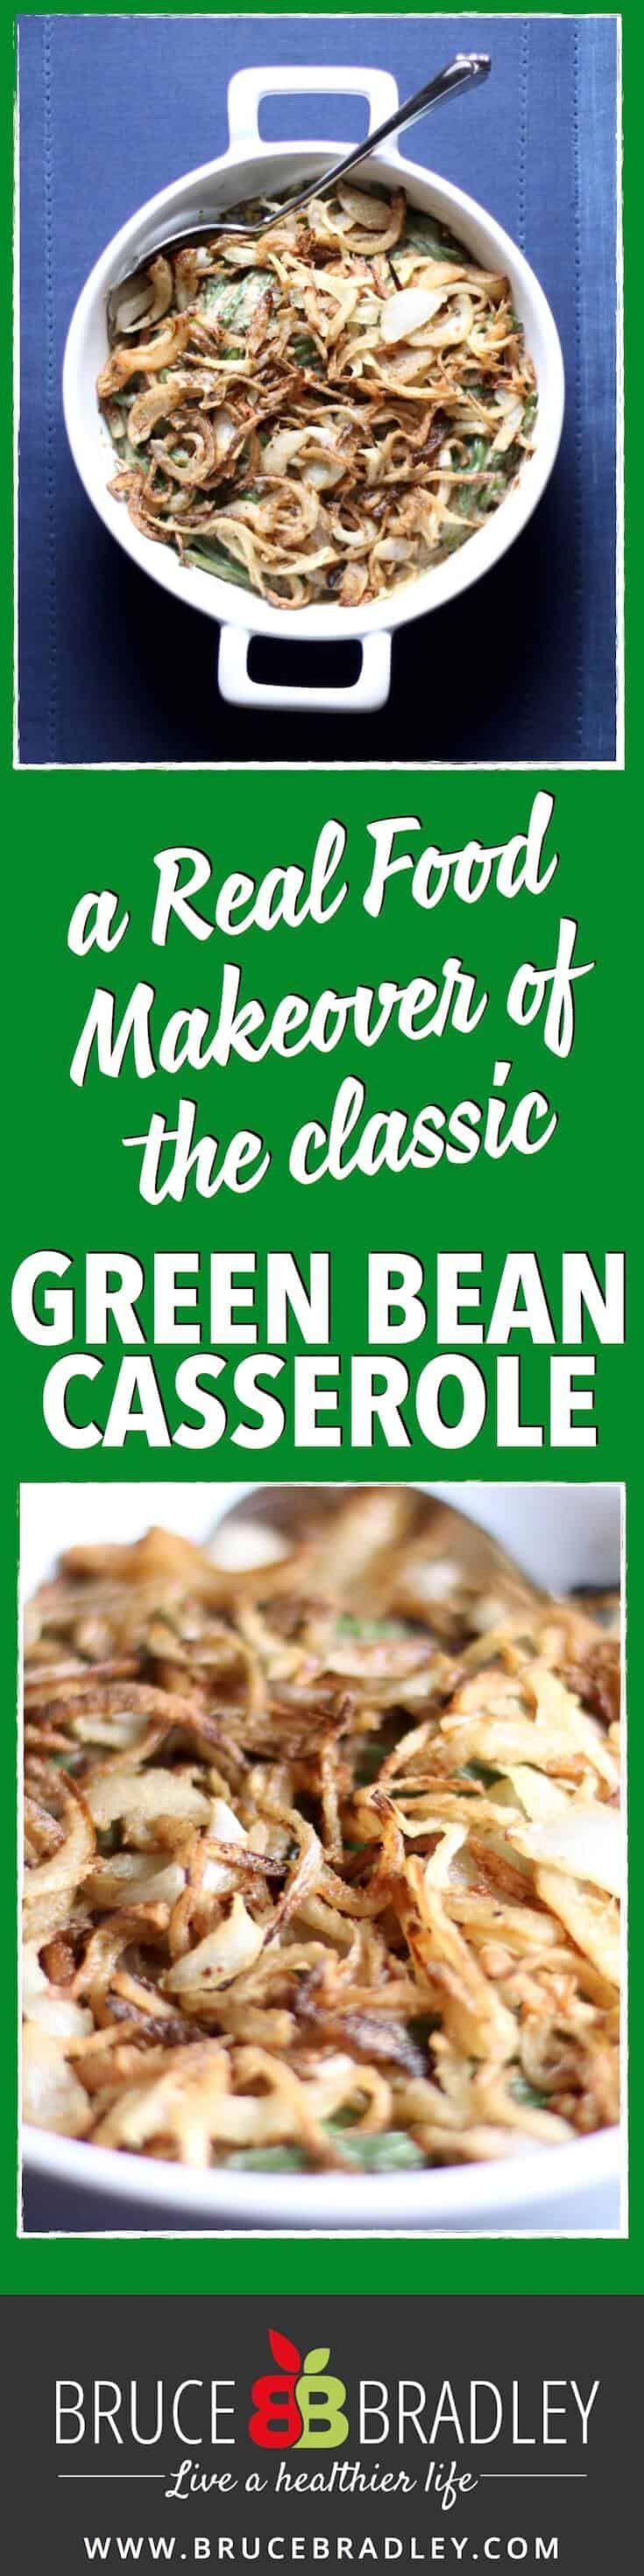 Bruce Bradley's delicious real food makeover of the holiday classic Green Bean Casserole!